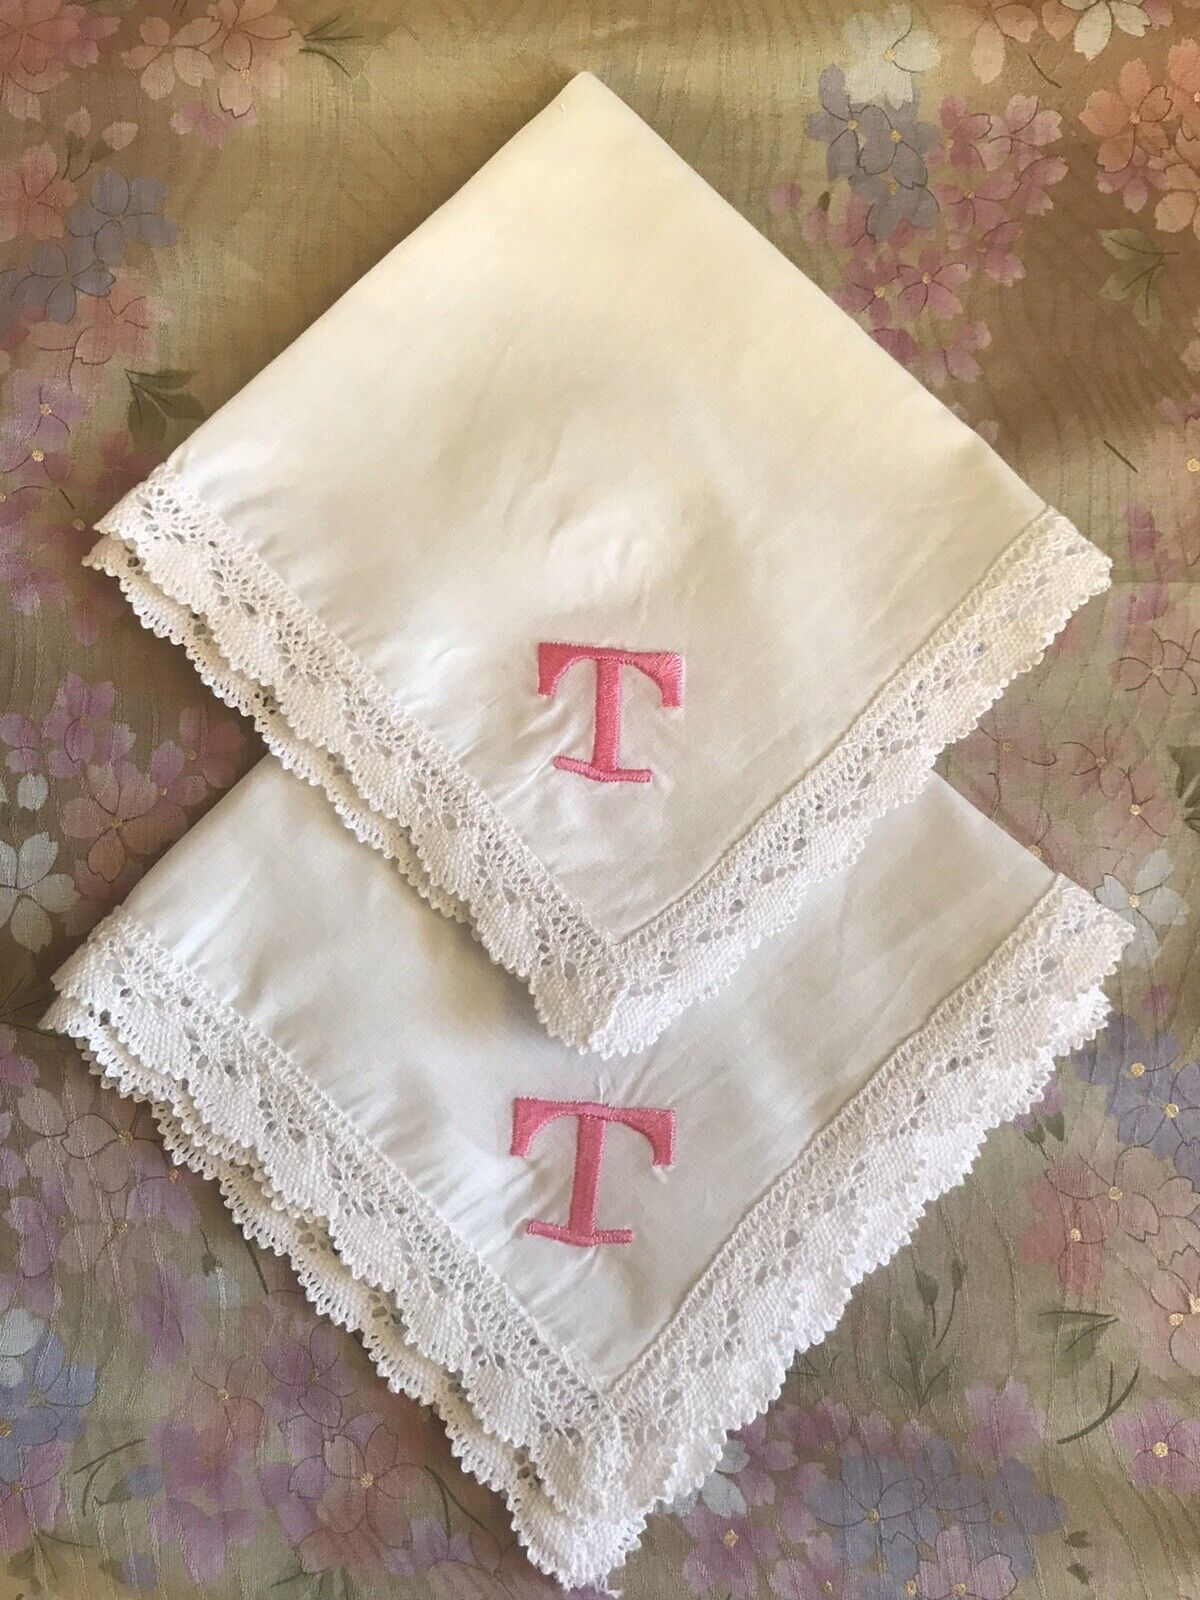 Beautiful Personalized Embroidered Woman's Handkerchief - Present Idea